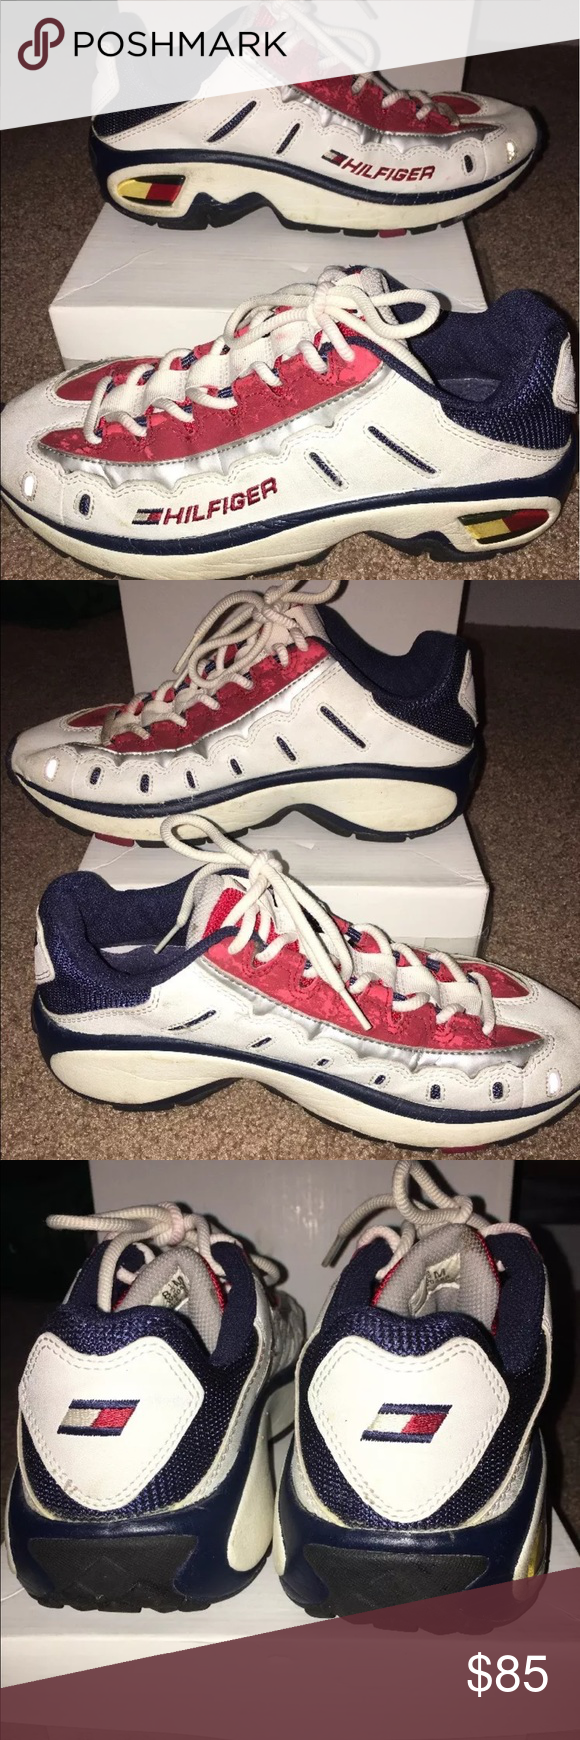 91d1cd6ed07439 90 s Tommy Hilfiger sneakers Authentic 90 s men s Tommy Hilfiger sneakers .  Pre owned but great for the era they came from . Laces will be cleaned  before ...